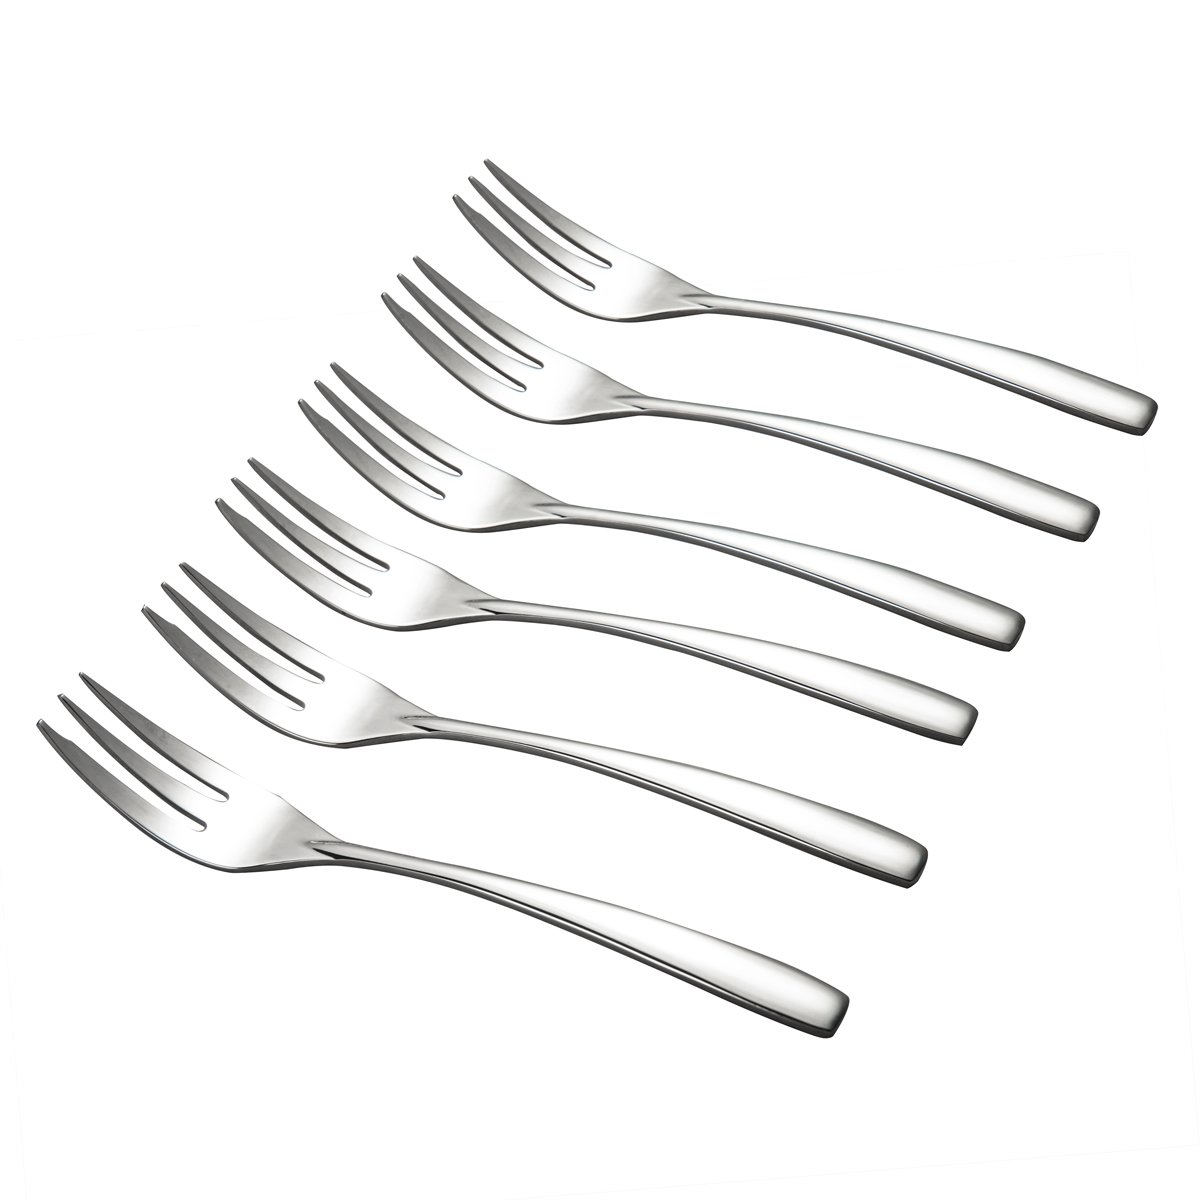 IMEEA Dessert Forks SUS304 Stainless Steel Salad Forks Appetizer Forks for Tastings Cakes 6-Inch, Set of 6